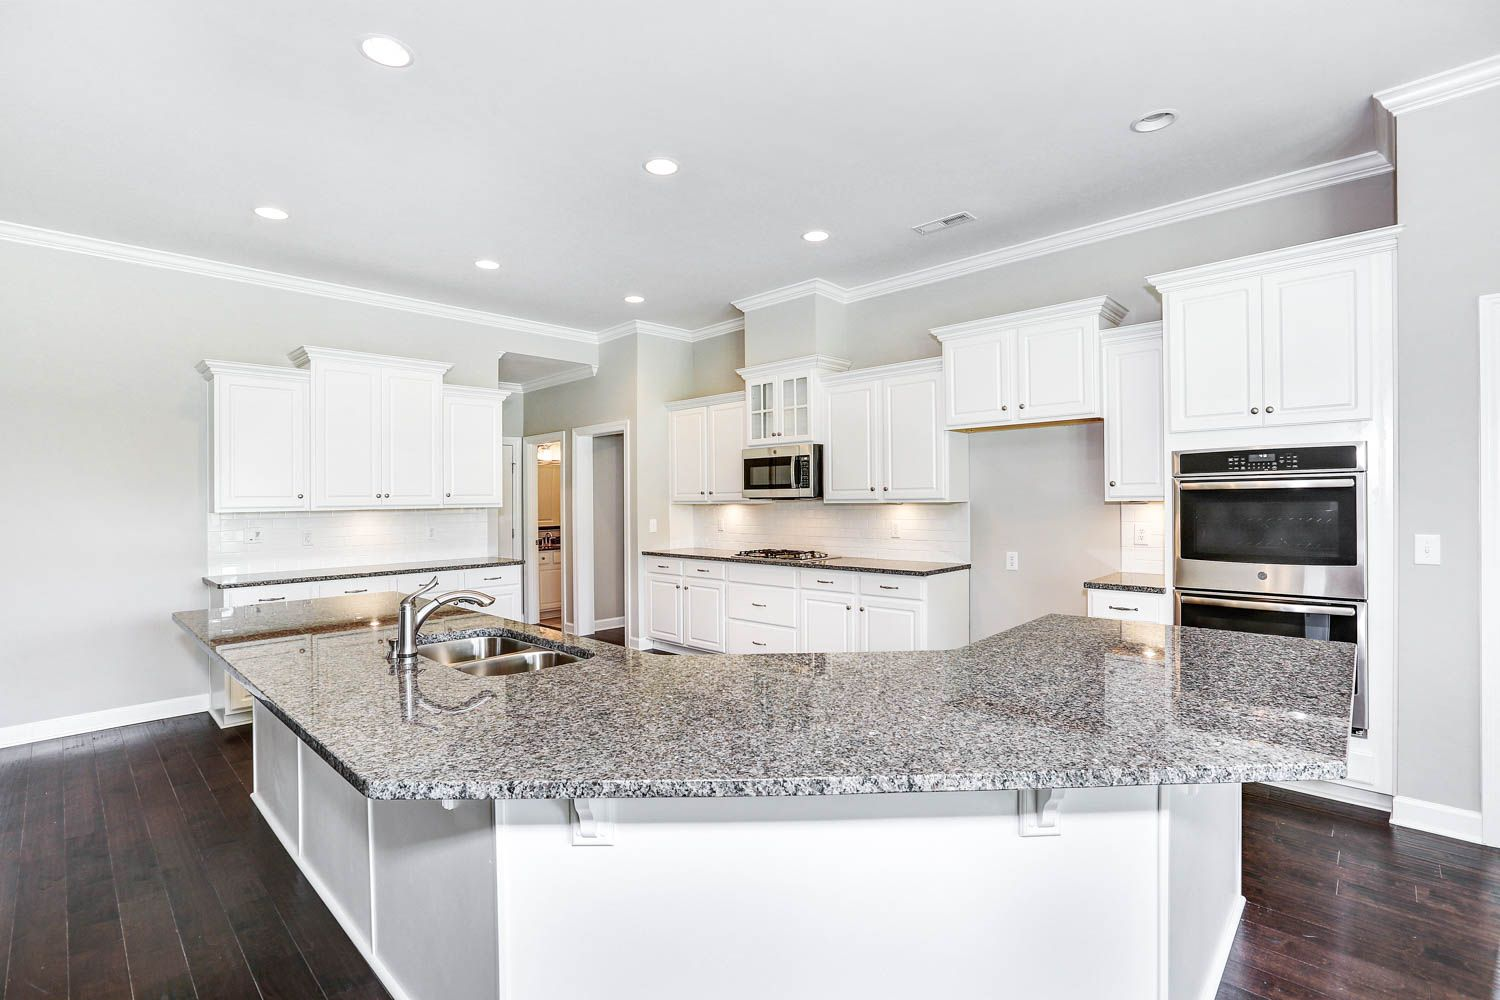 Kitchen featured in The Shelburne By Goodall Homes in Huntsville, AL